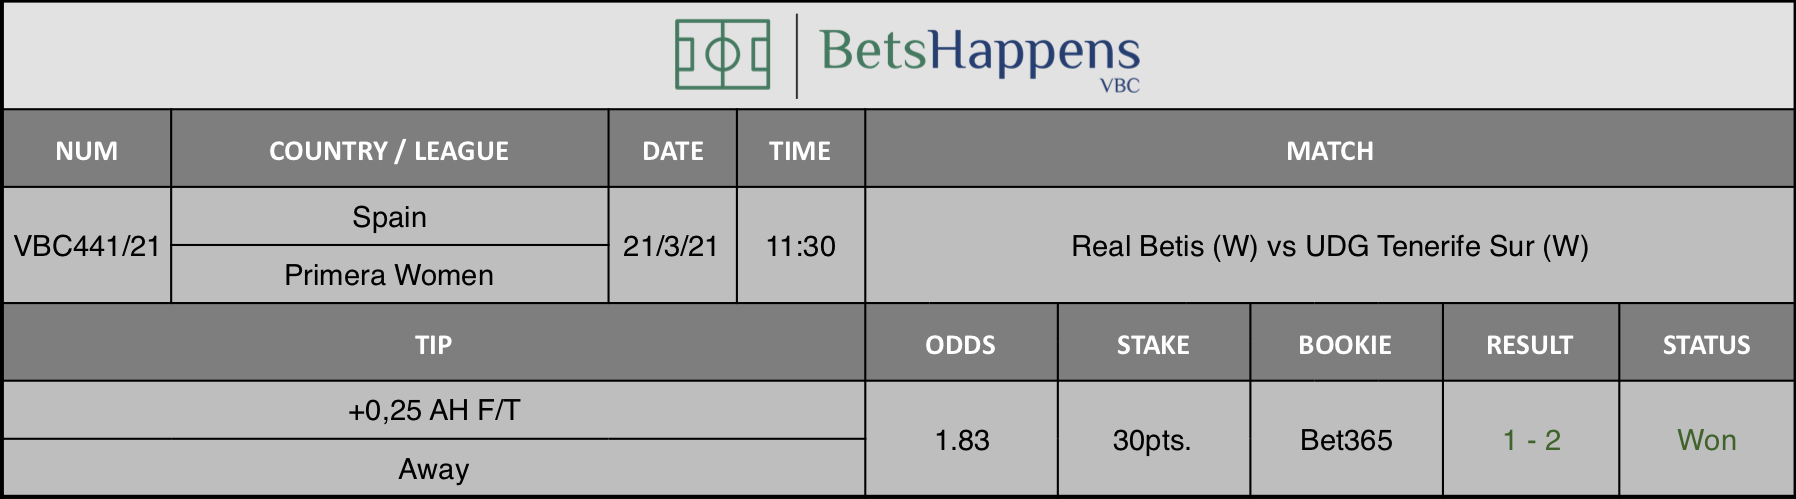 Results of our tip for the Real Betis (W) vs UDG Tenerife Sur (W) match where +0,25 AH F/T  Away is recommended.